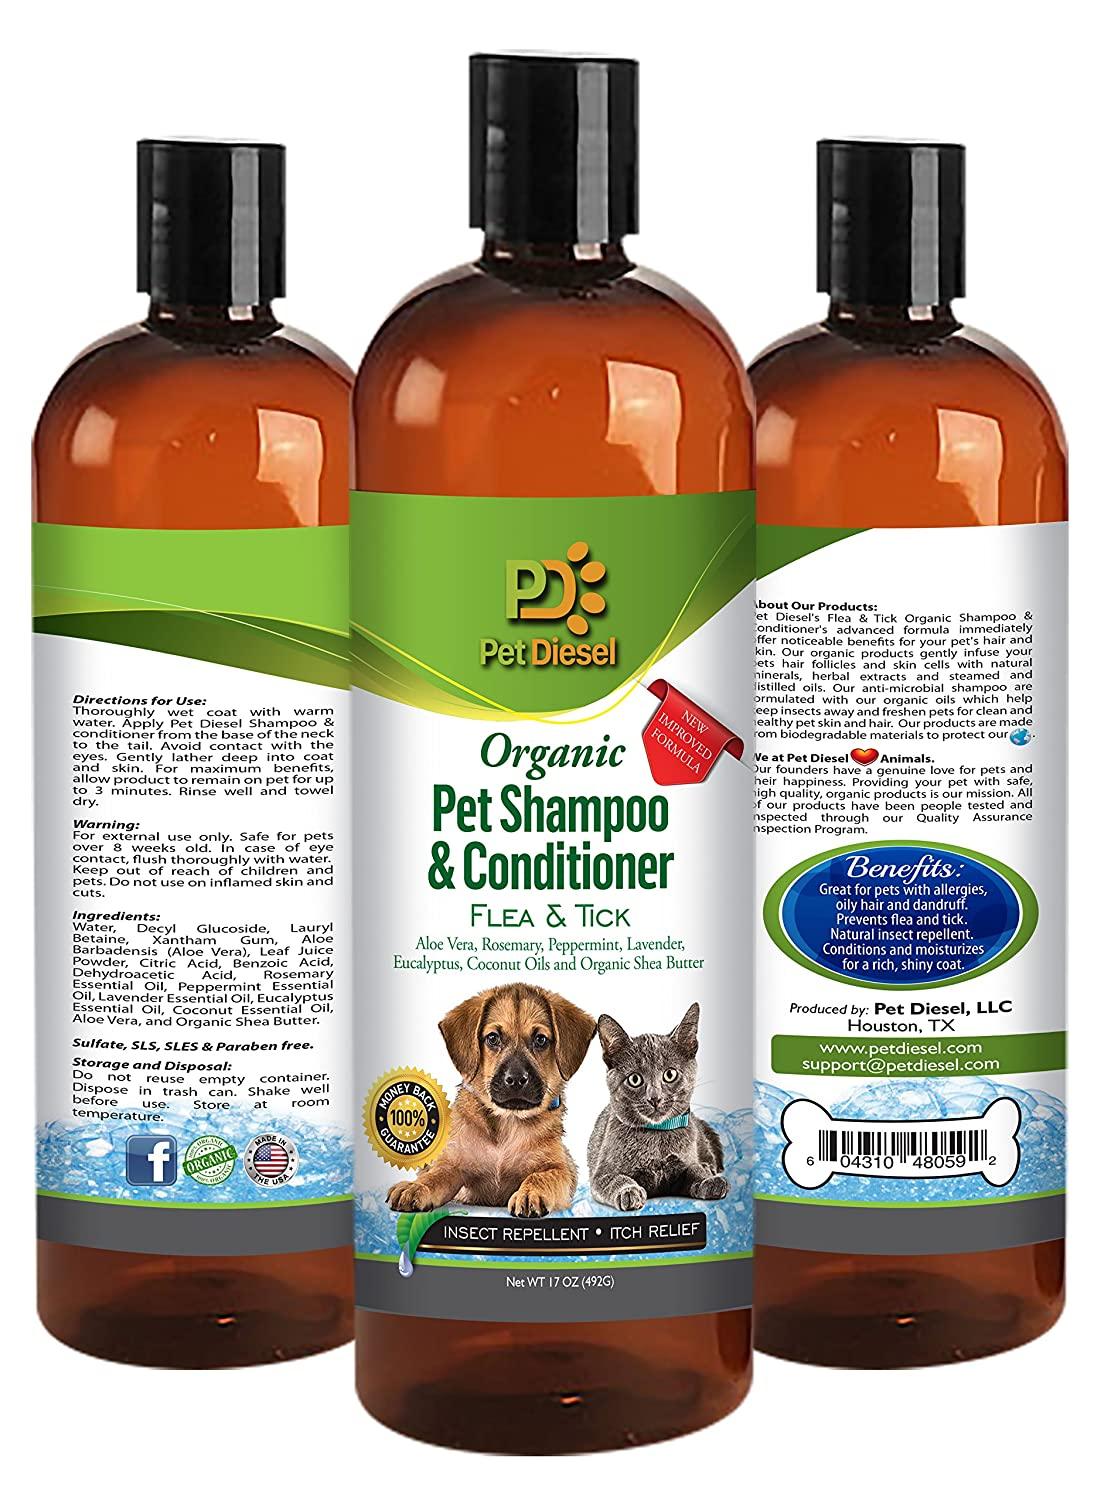 17 oz Organic Pet Shampoo & Conditioner: Neem Extract for Dry Skin, Itching, Hot Spot Relief, Moisturizing, Consistent Texture - For Shiny & Healthy Hair/Coat